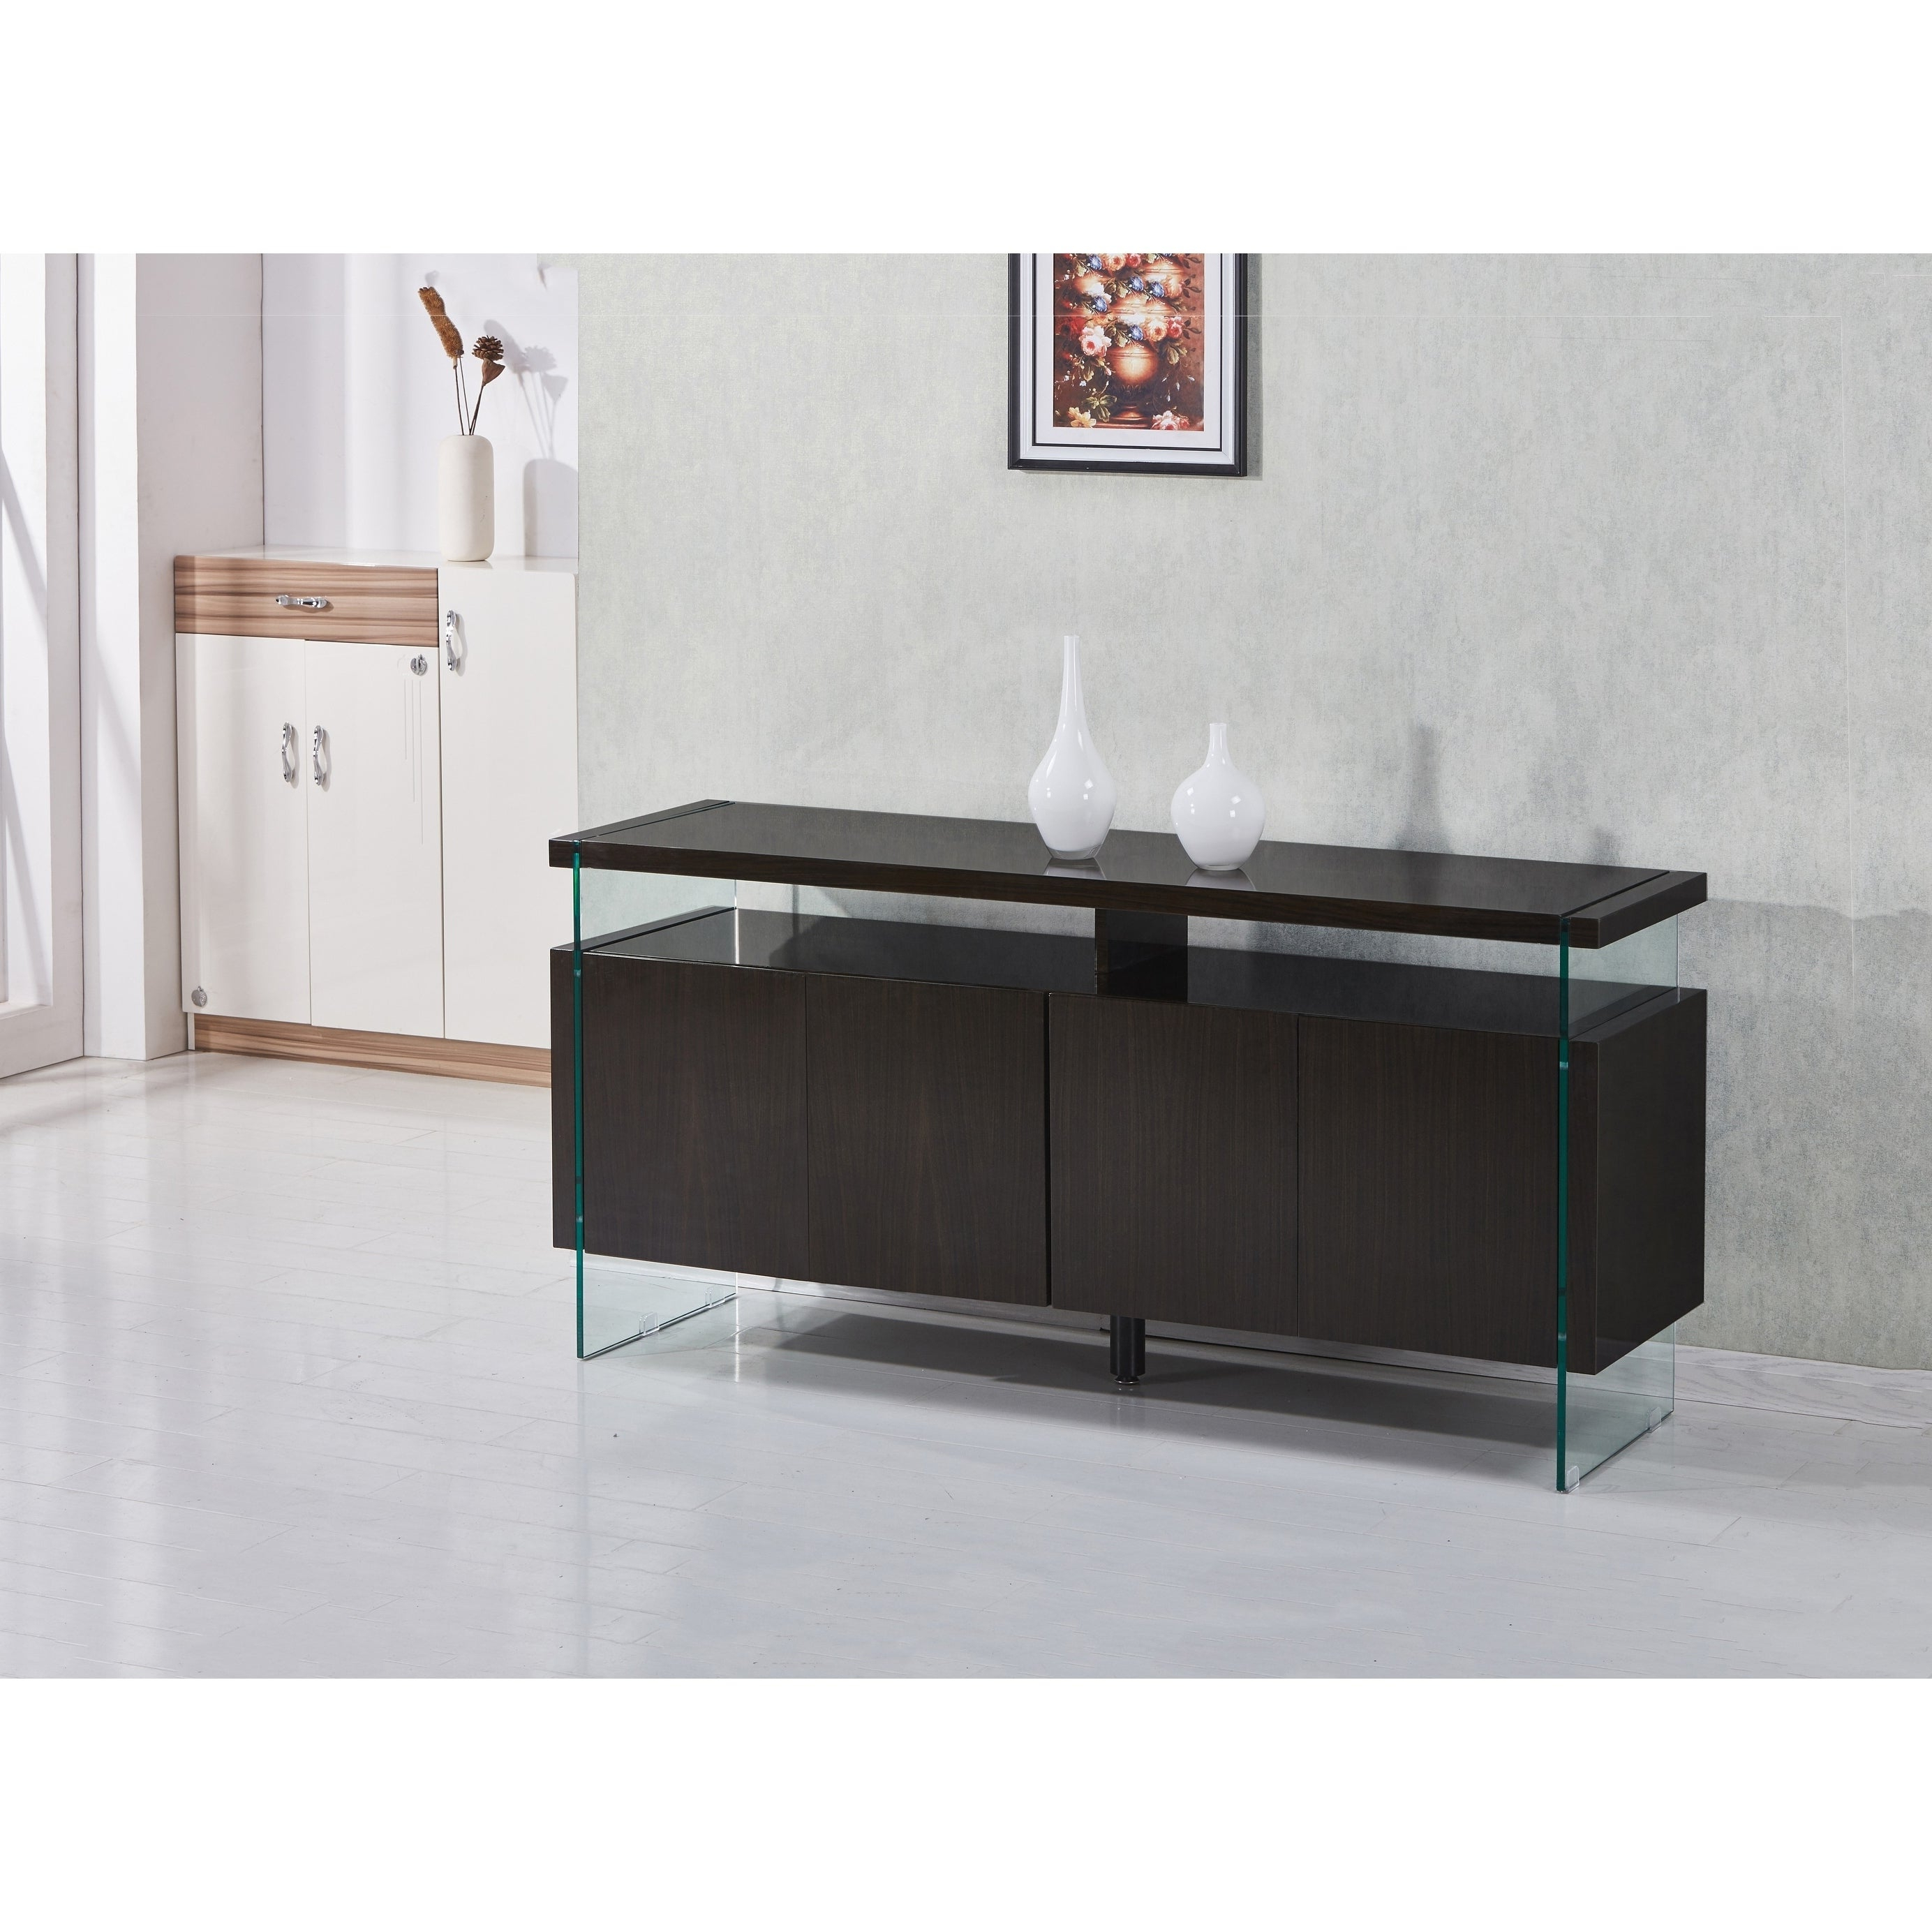 Best Quality Furniture 4 Door Lacquer Buffet Server With 4 Door Lacquer Buffets (View 7 of 20)